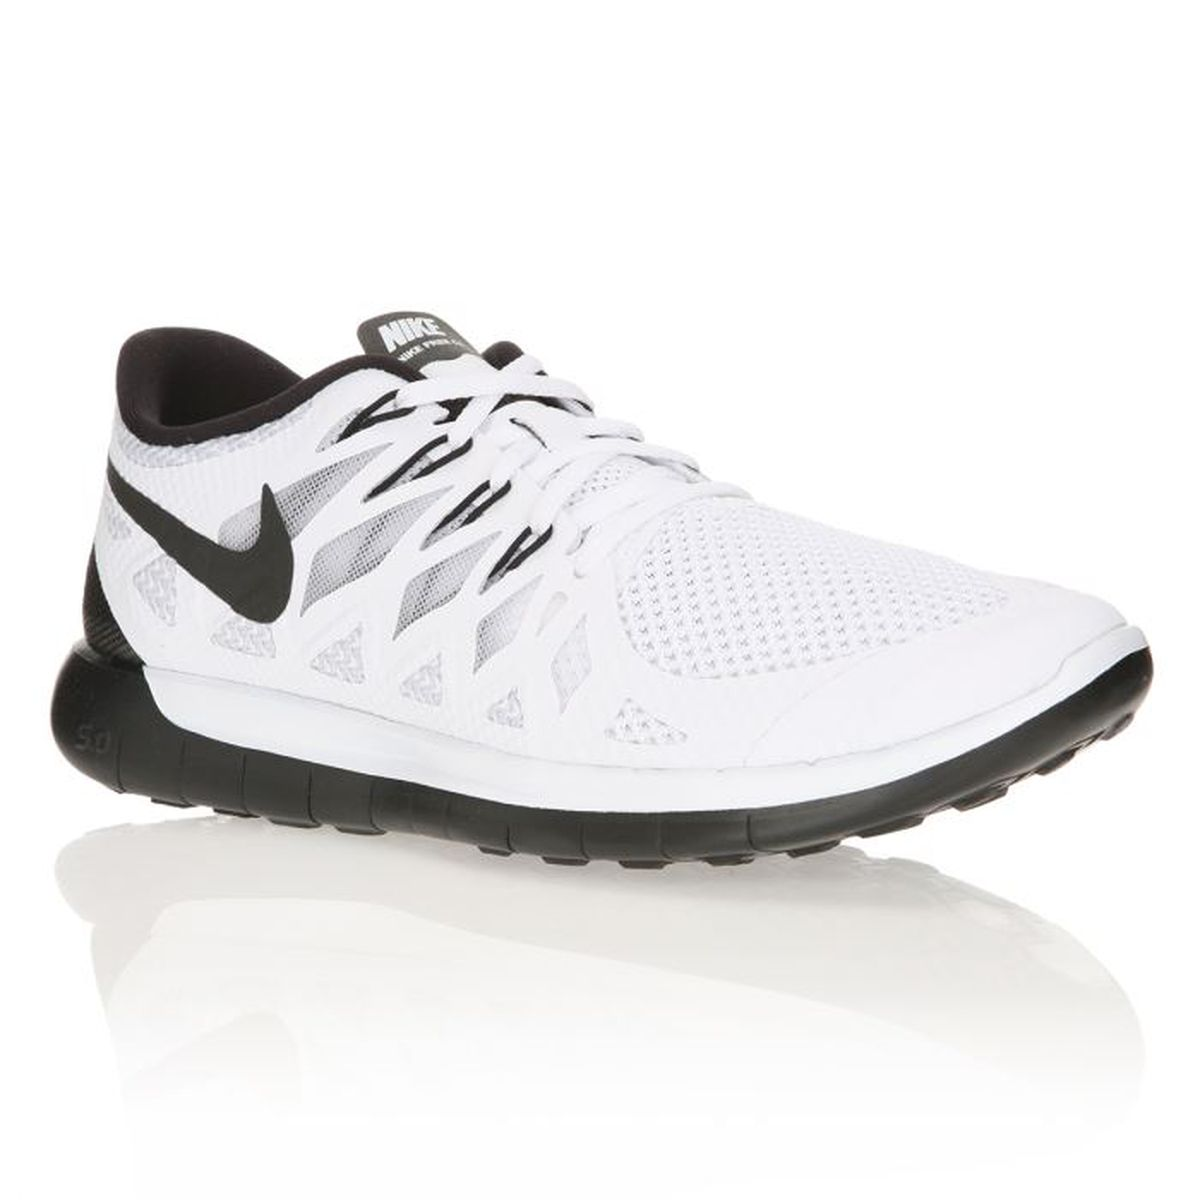 Pas Free Prix Cher Cdiscount Nike Running Homme Chaussures 5 0 NnOm80vw